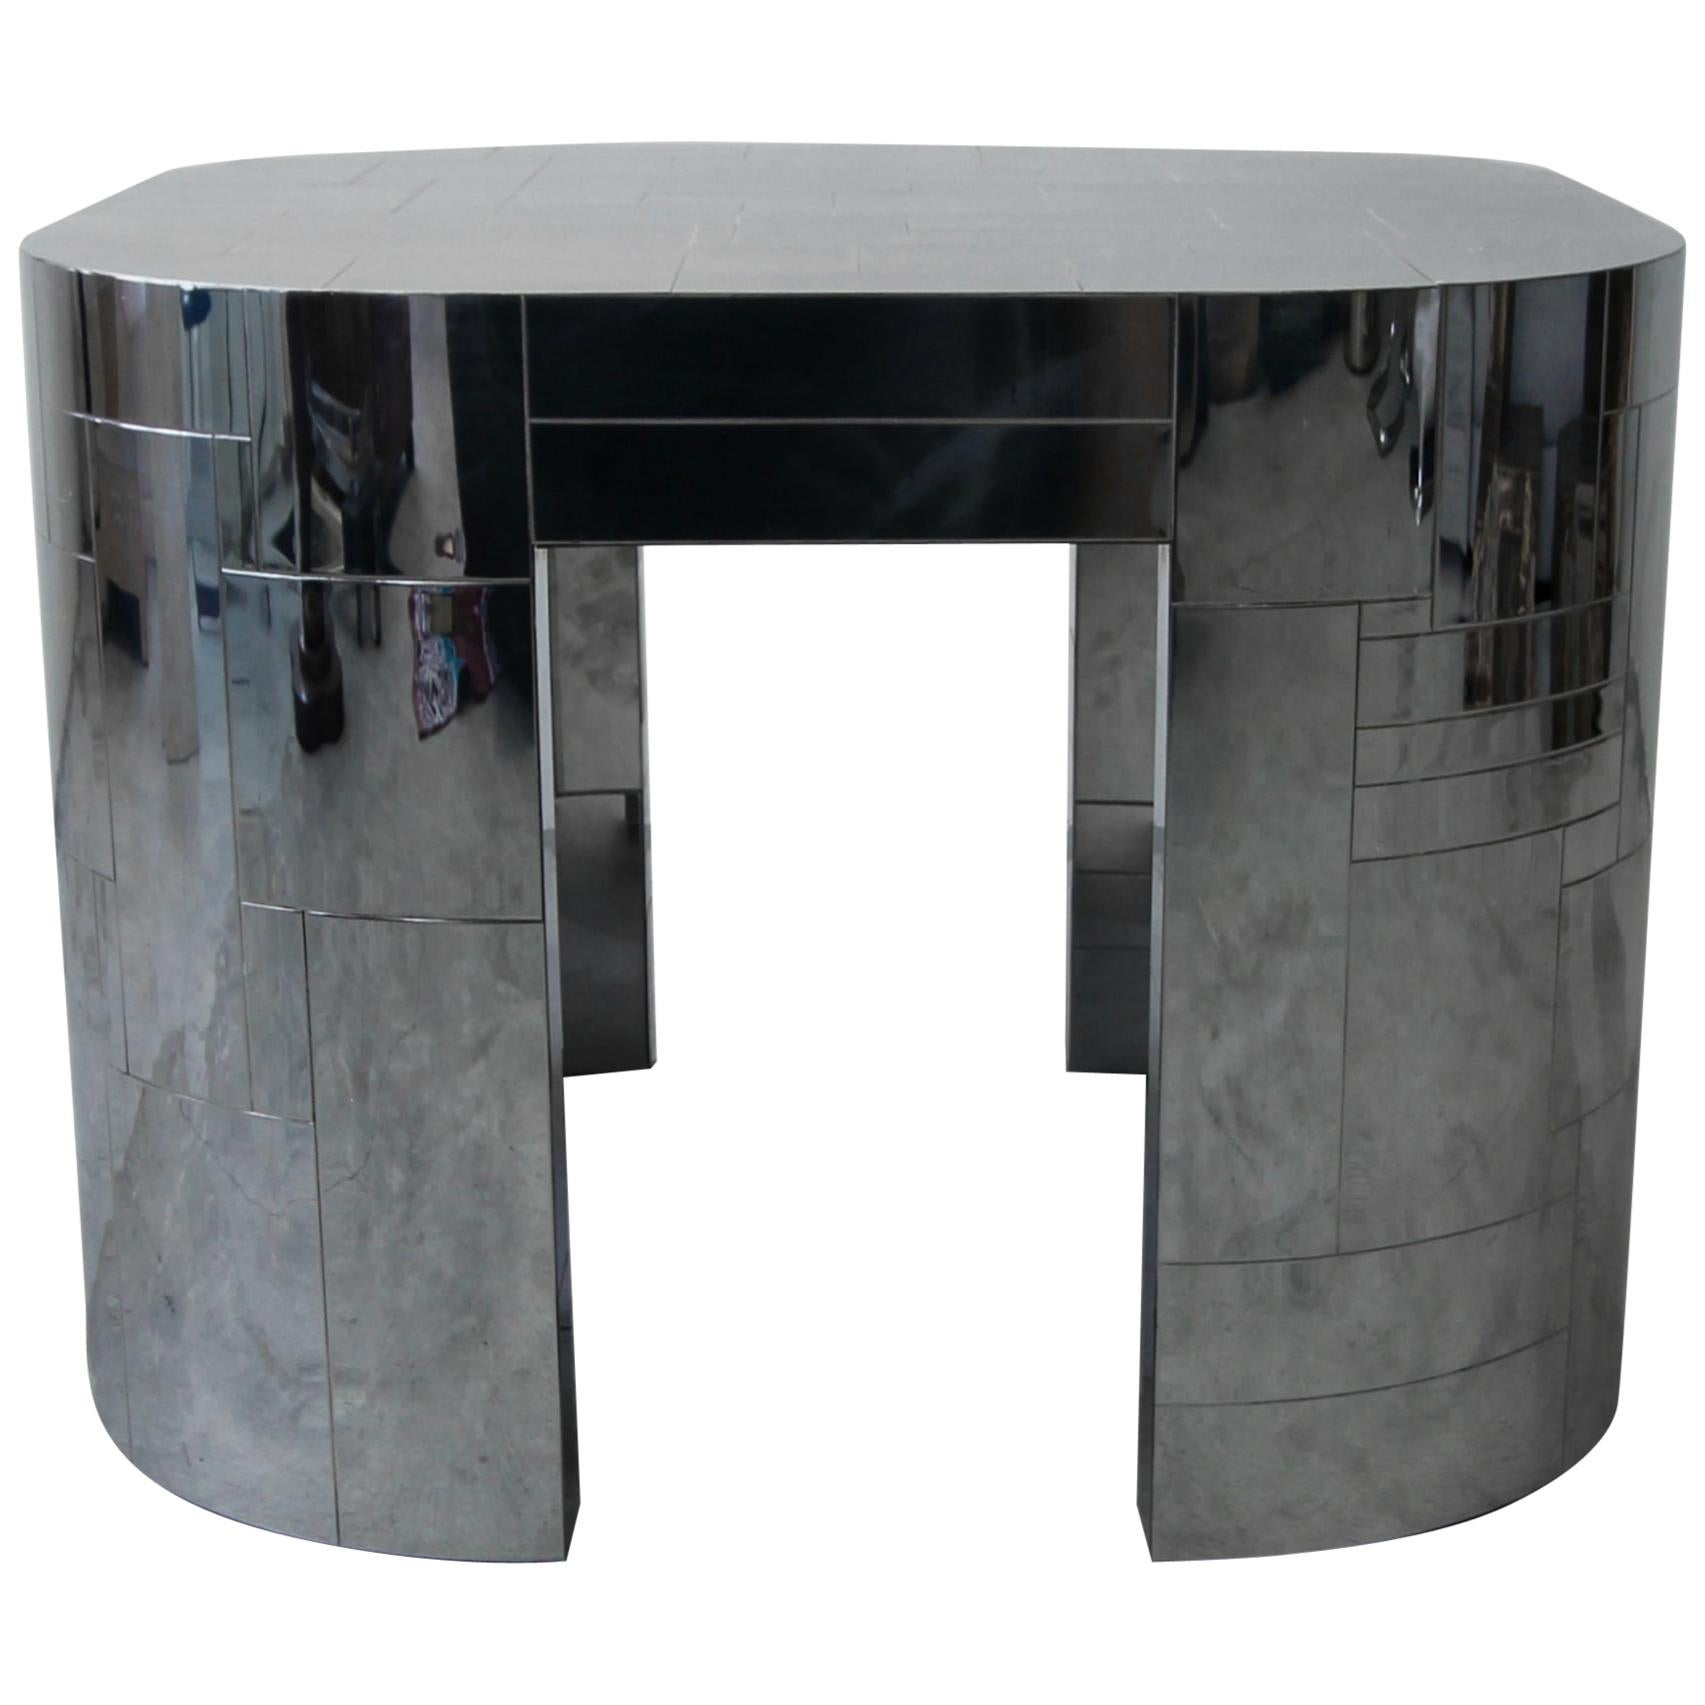 Rare Chrome Patchwork Cityscape Table By Paul Evans